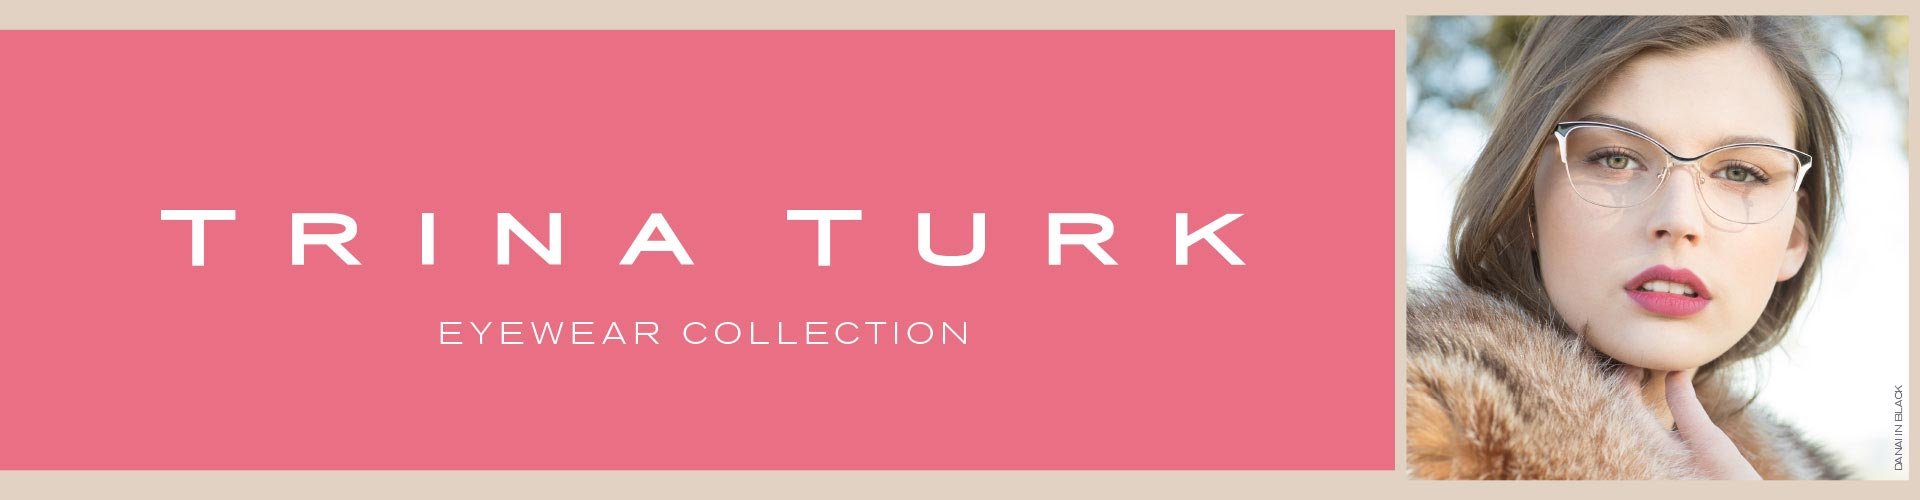 Shop Trina Turk Eyeglasses & Sunglasses - model Danai featured